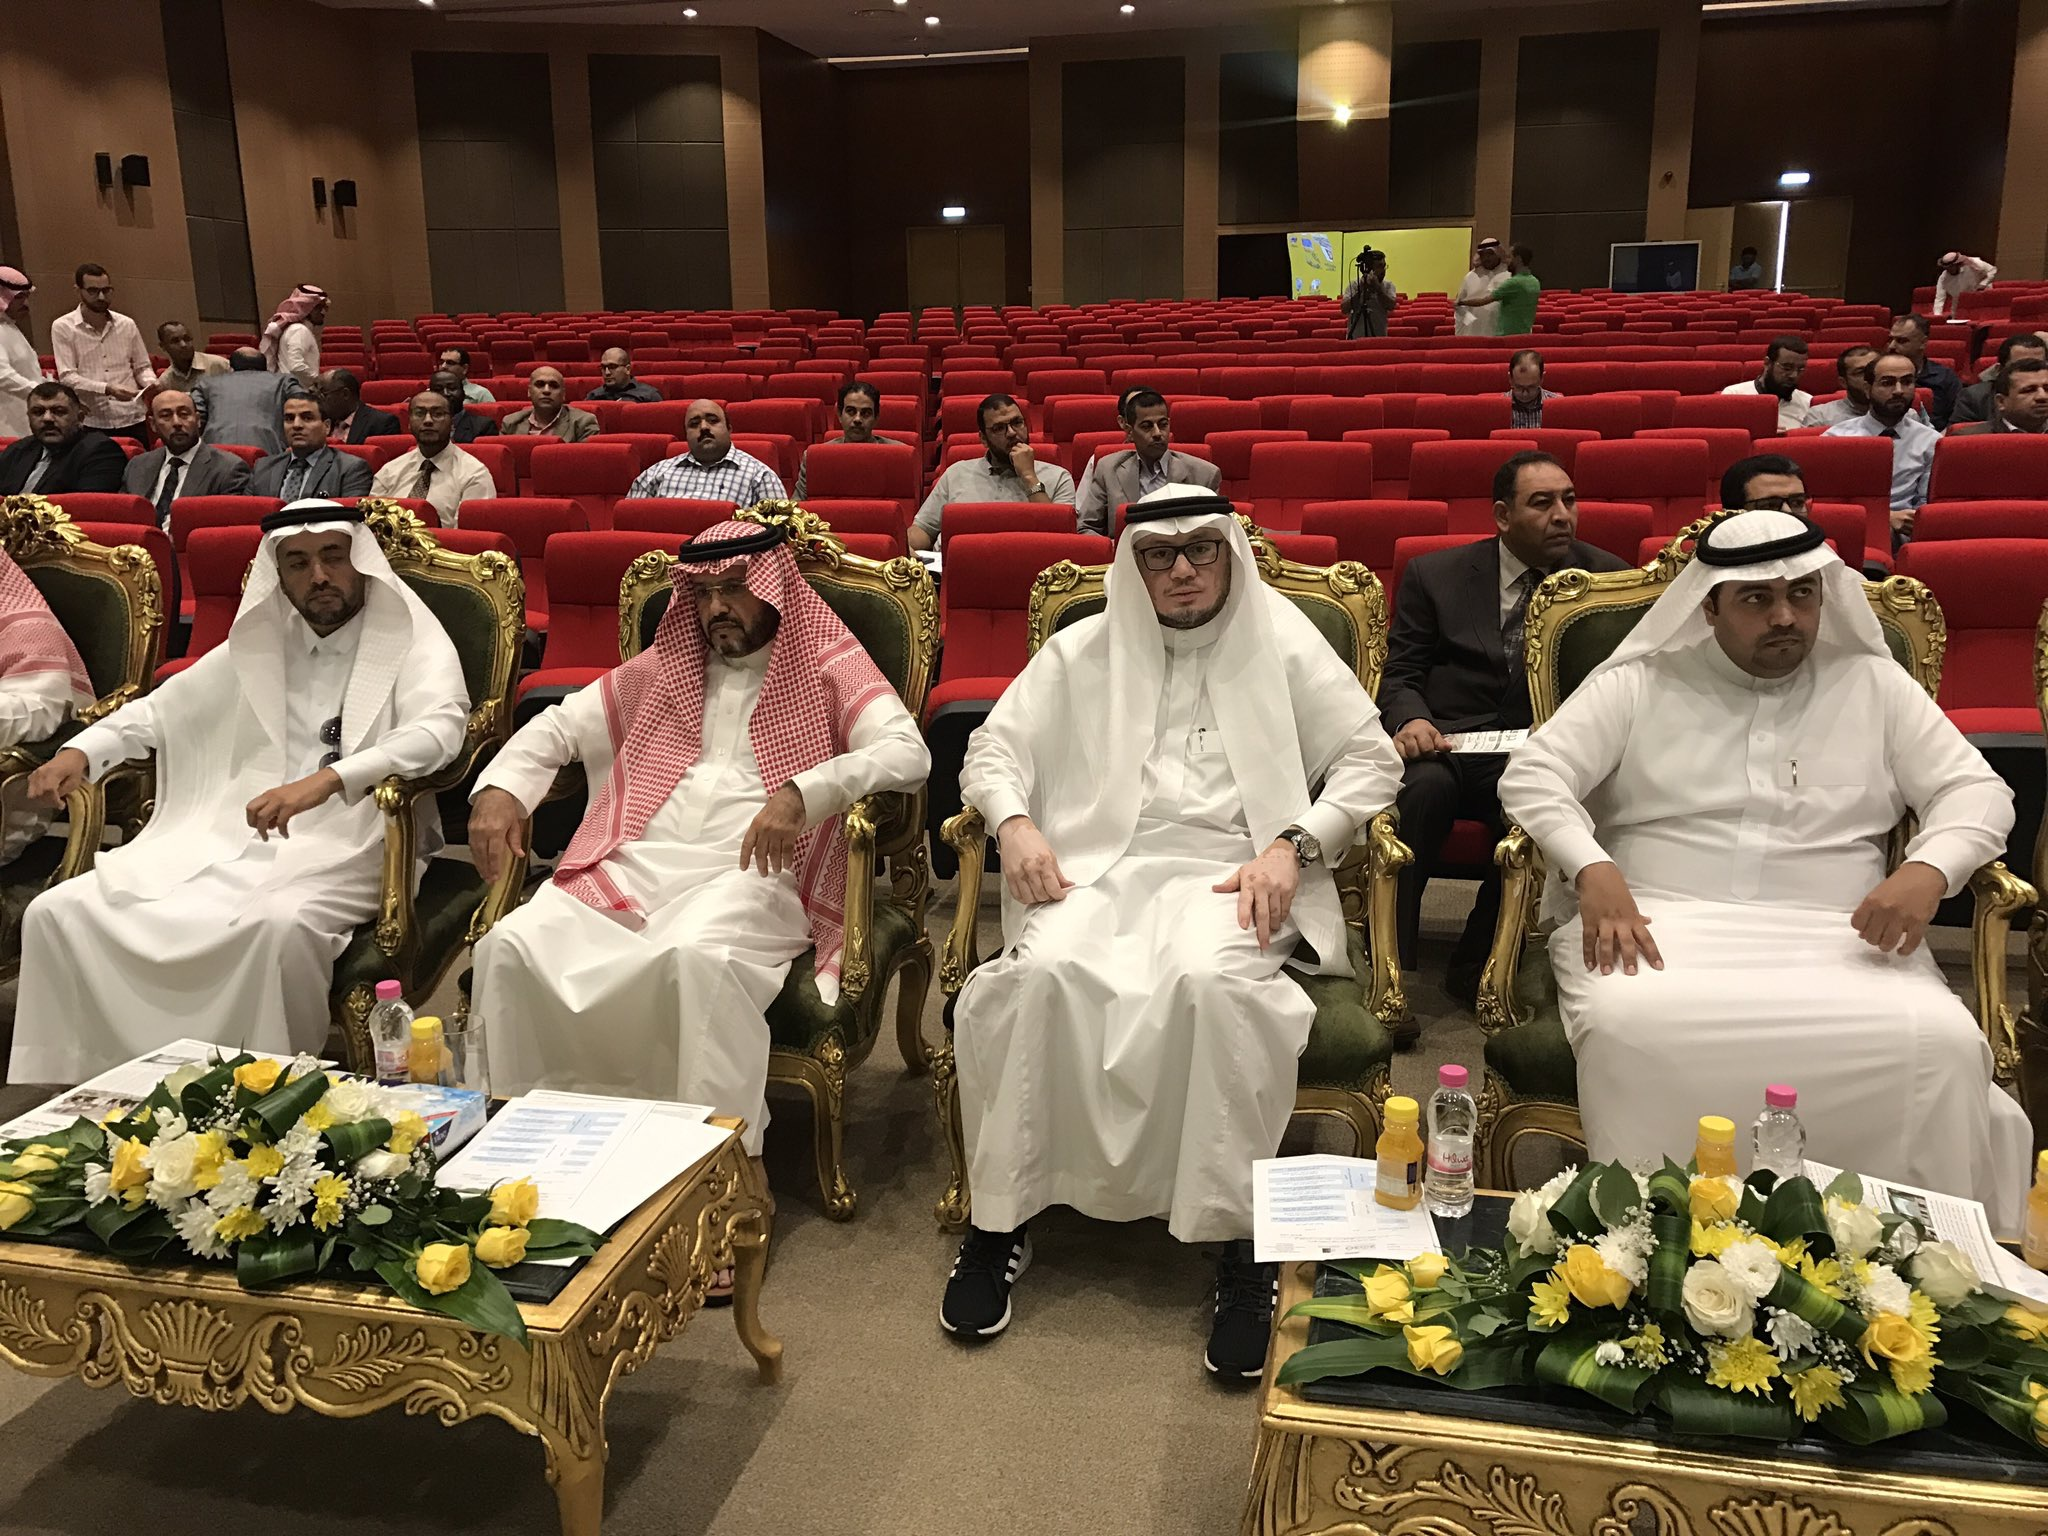 University Vice Rectorate of Quality and Development Concludes the Program of Receiving and Preparing New Faculty Members